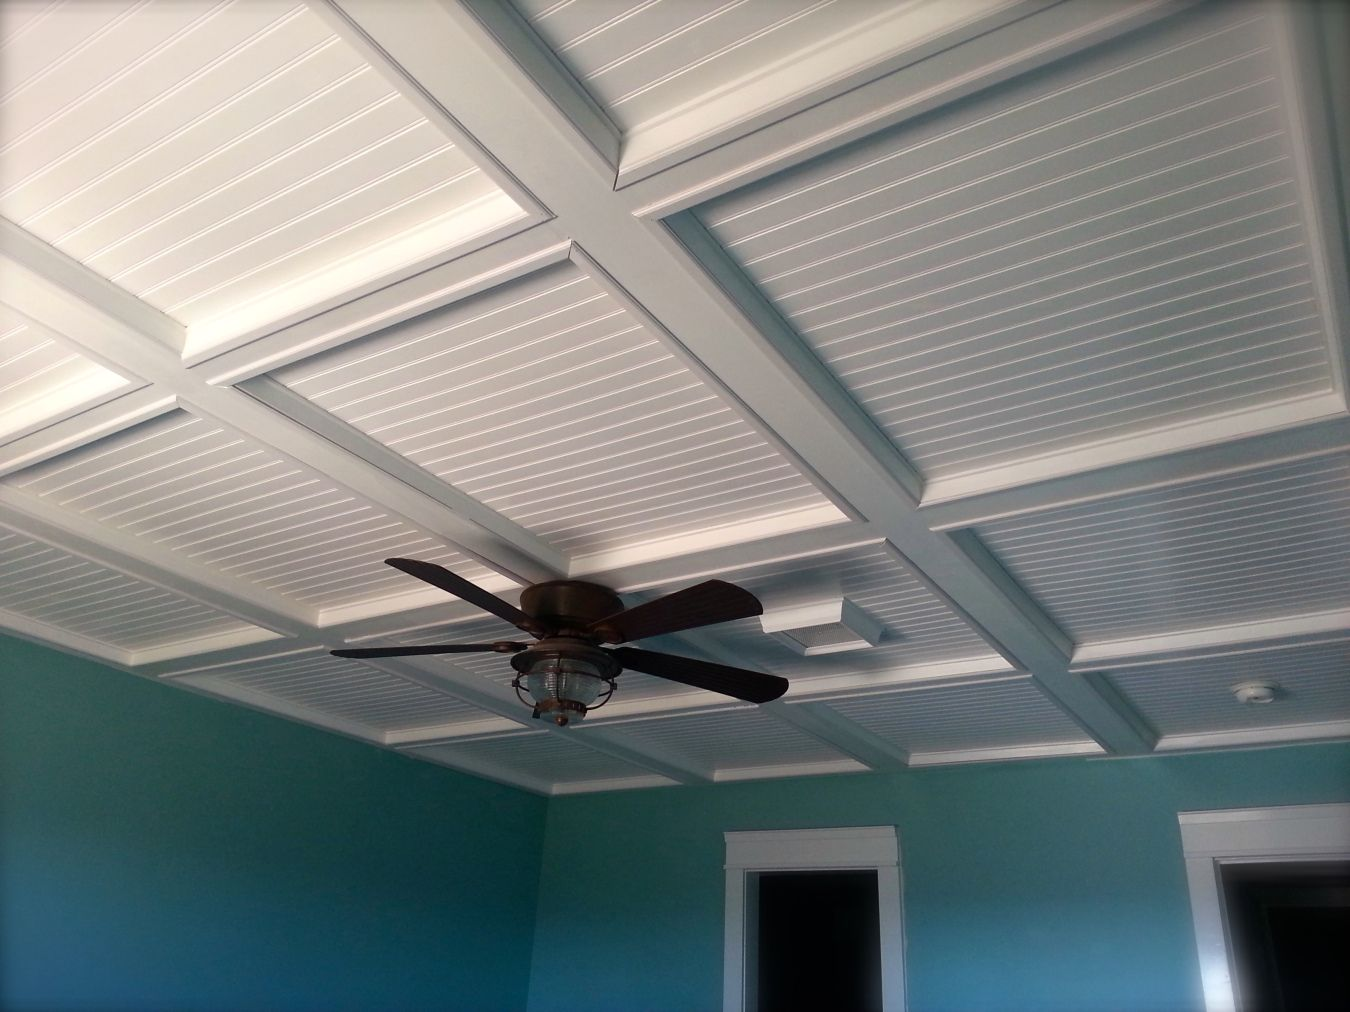 My DIY Suspended Ceiling Alternative. I'll Be Sharing On